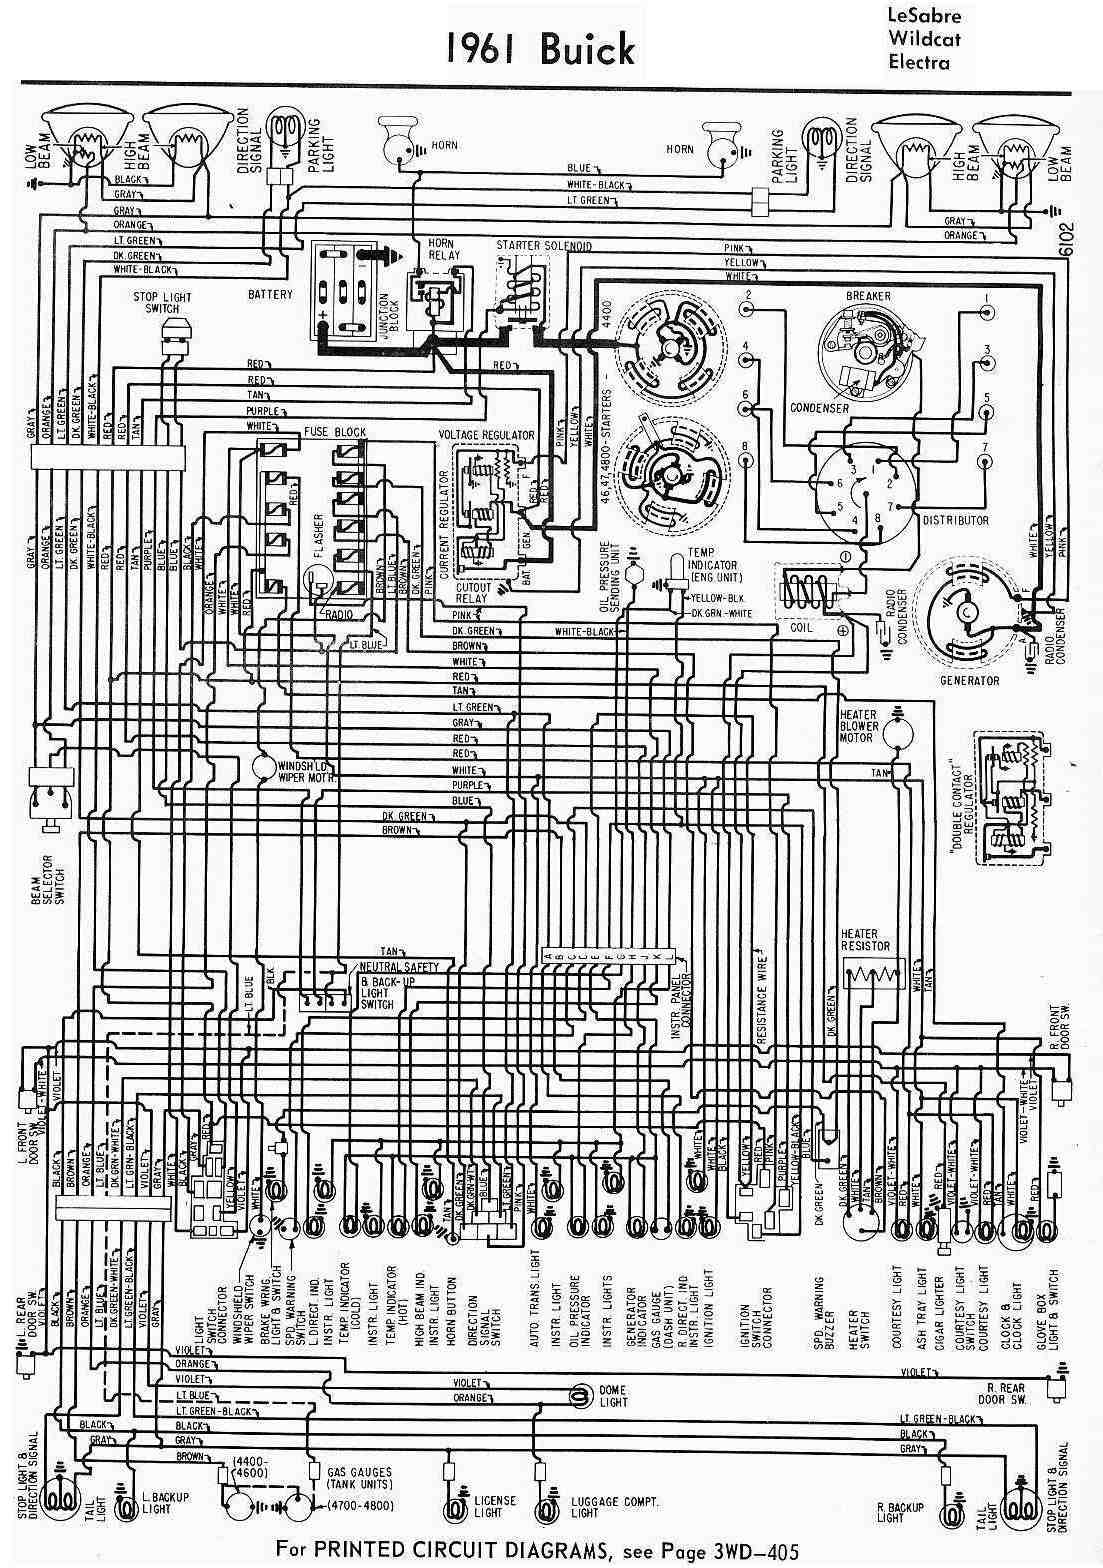 small resolution of 1989 buick electra wiring diagram data diagram schematic1989 buick electra wiring diagram data wiring diagram 1989